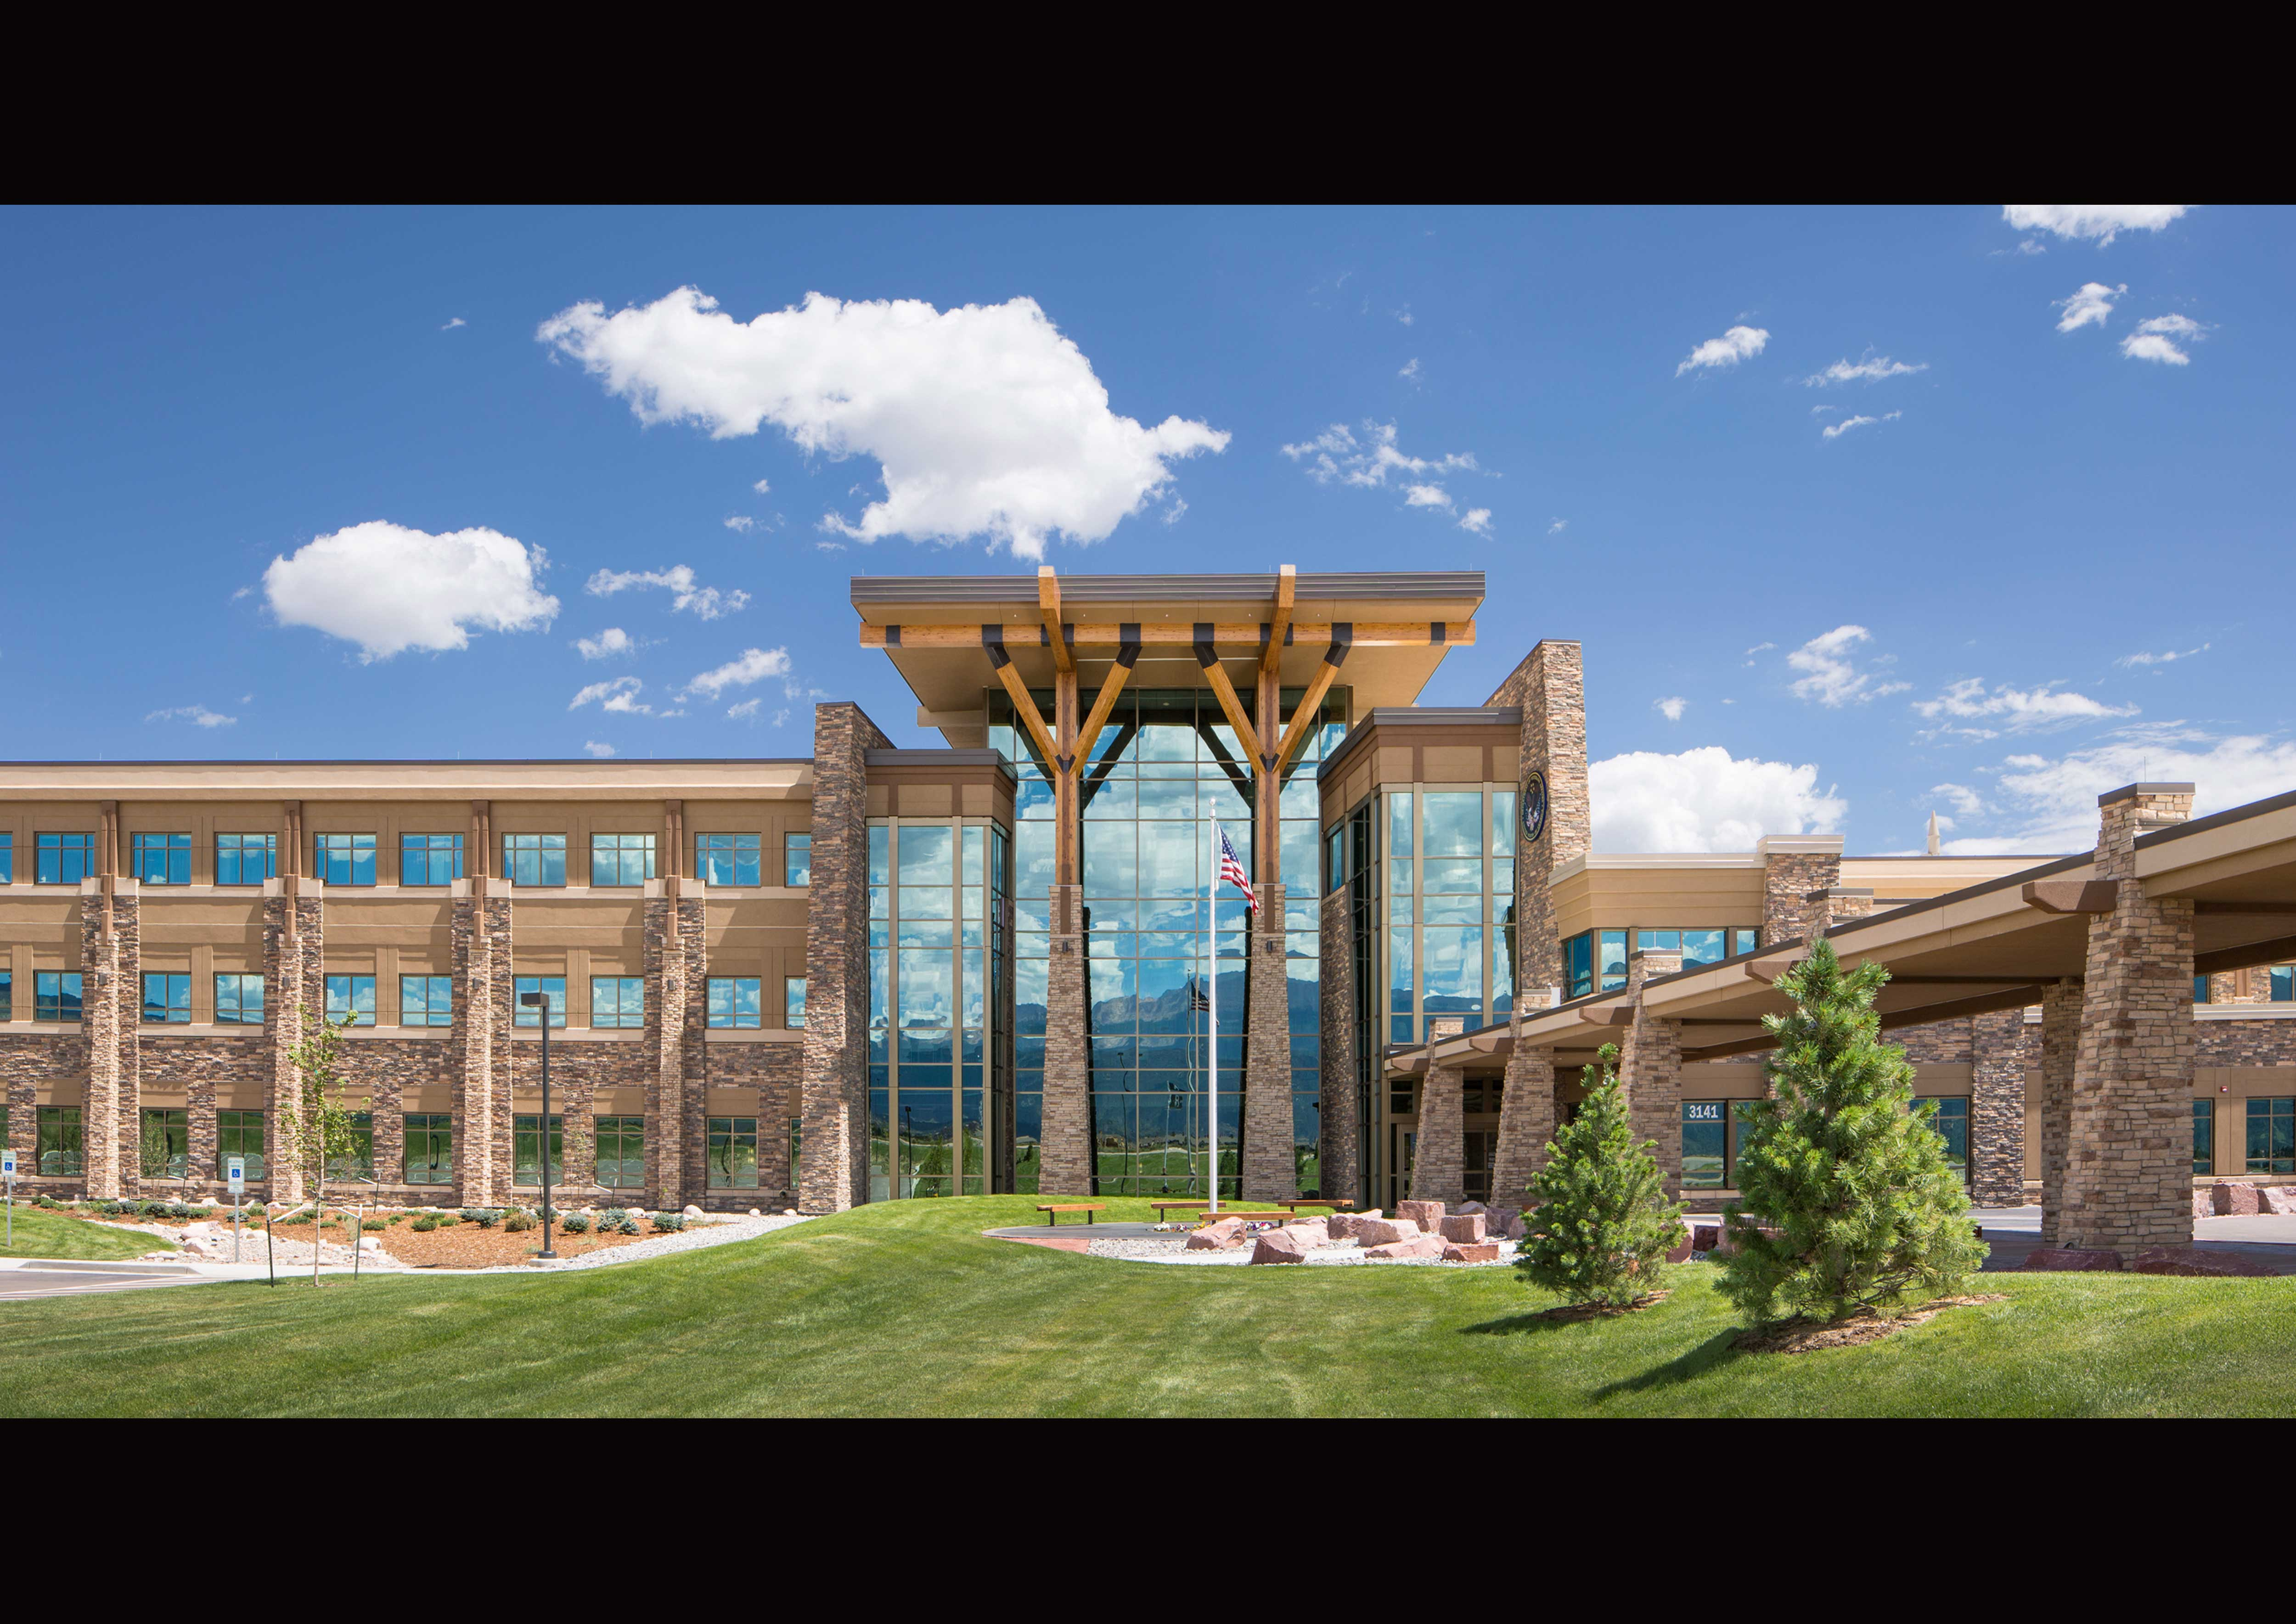 Colorado Springs VA Outpatient Clinic broke ground on Veterans Day